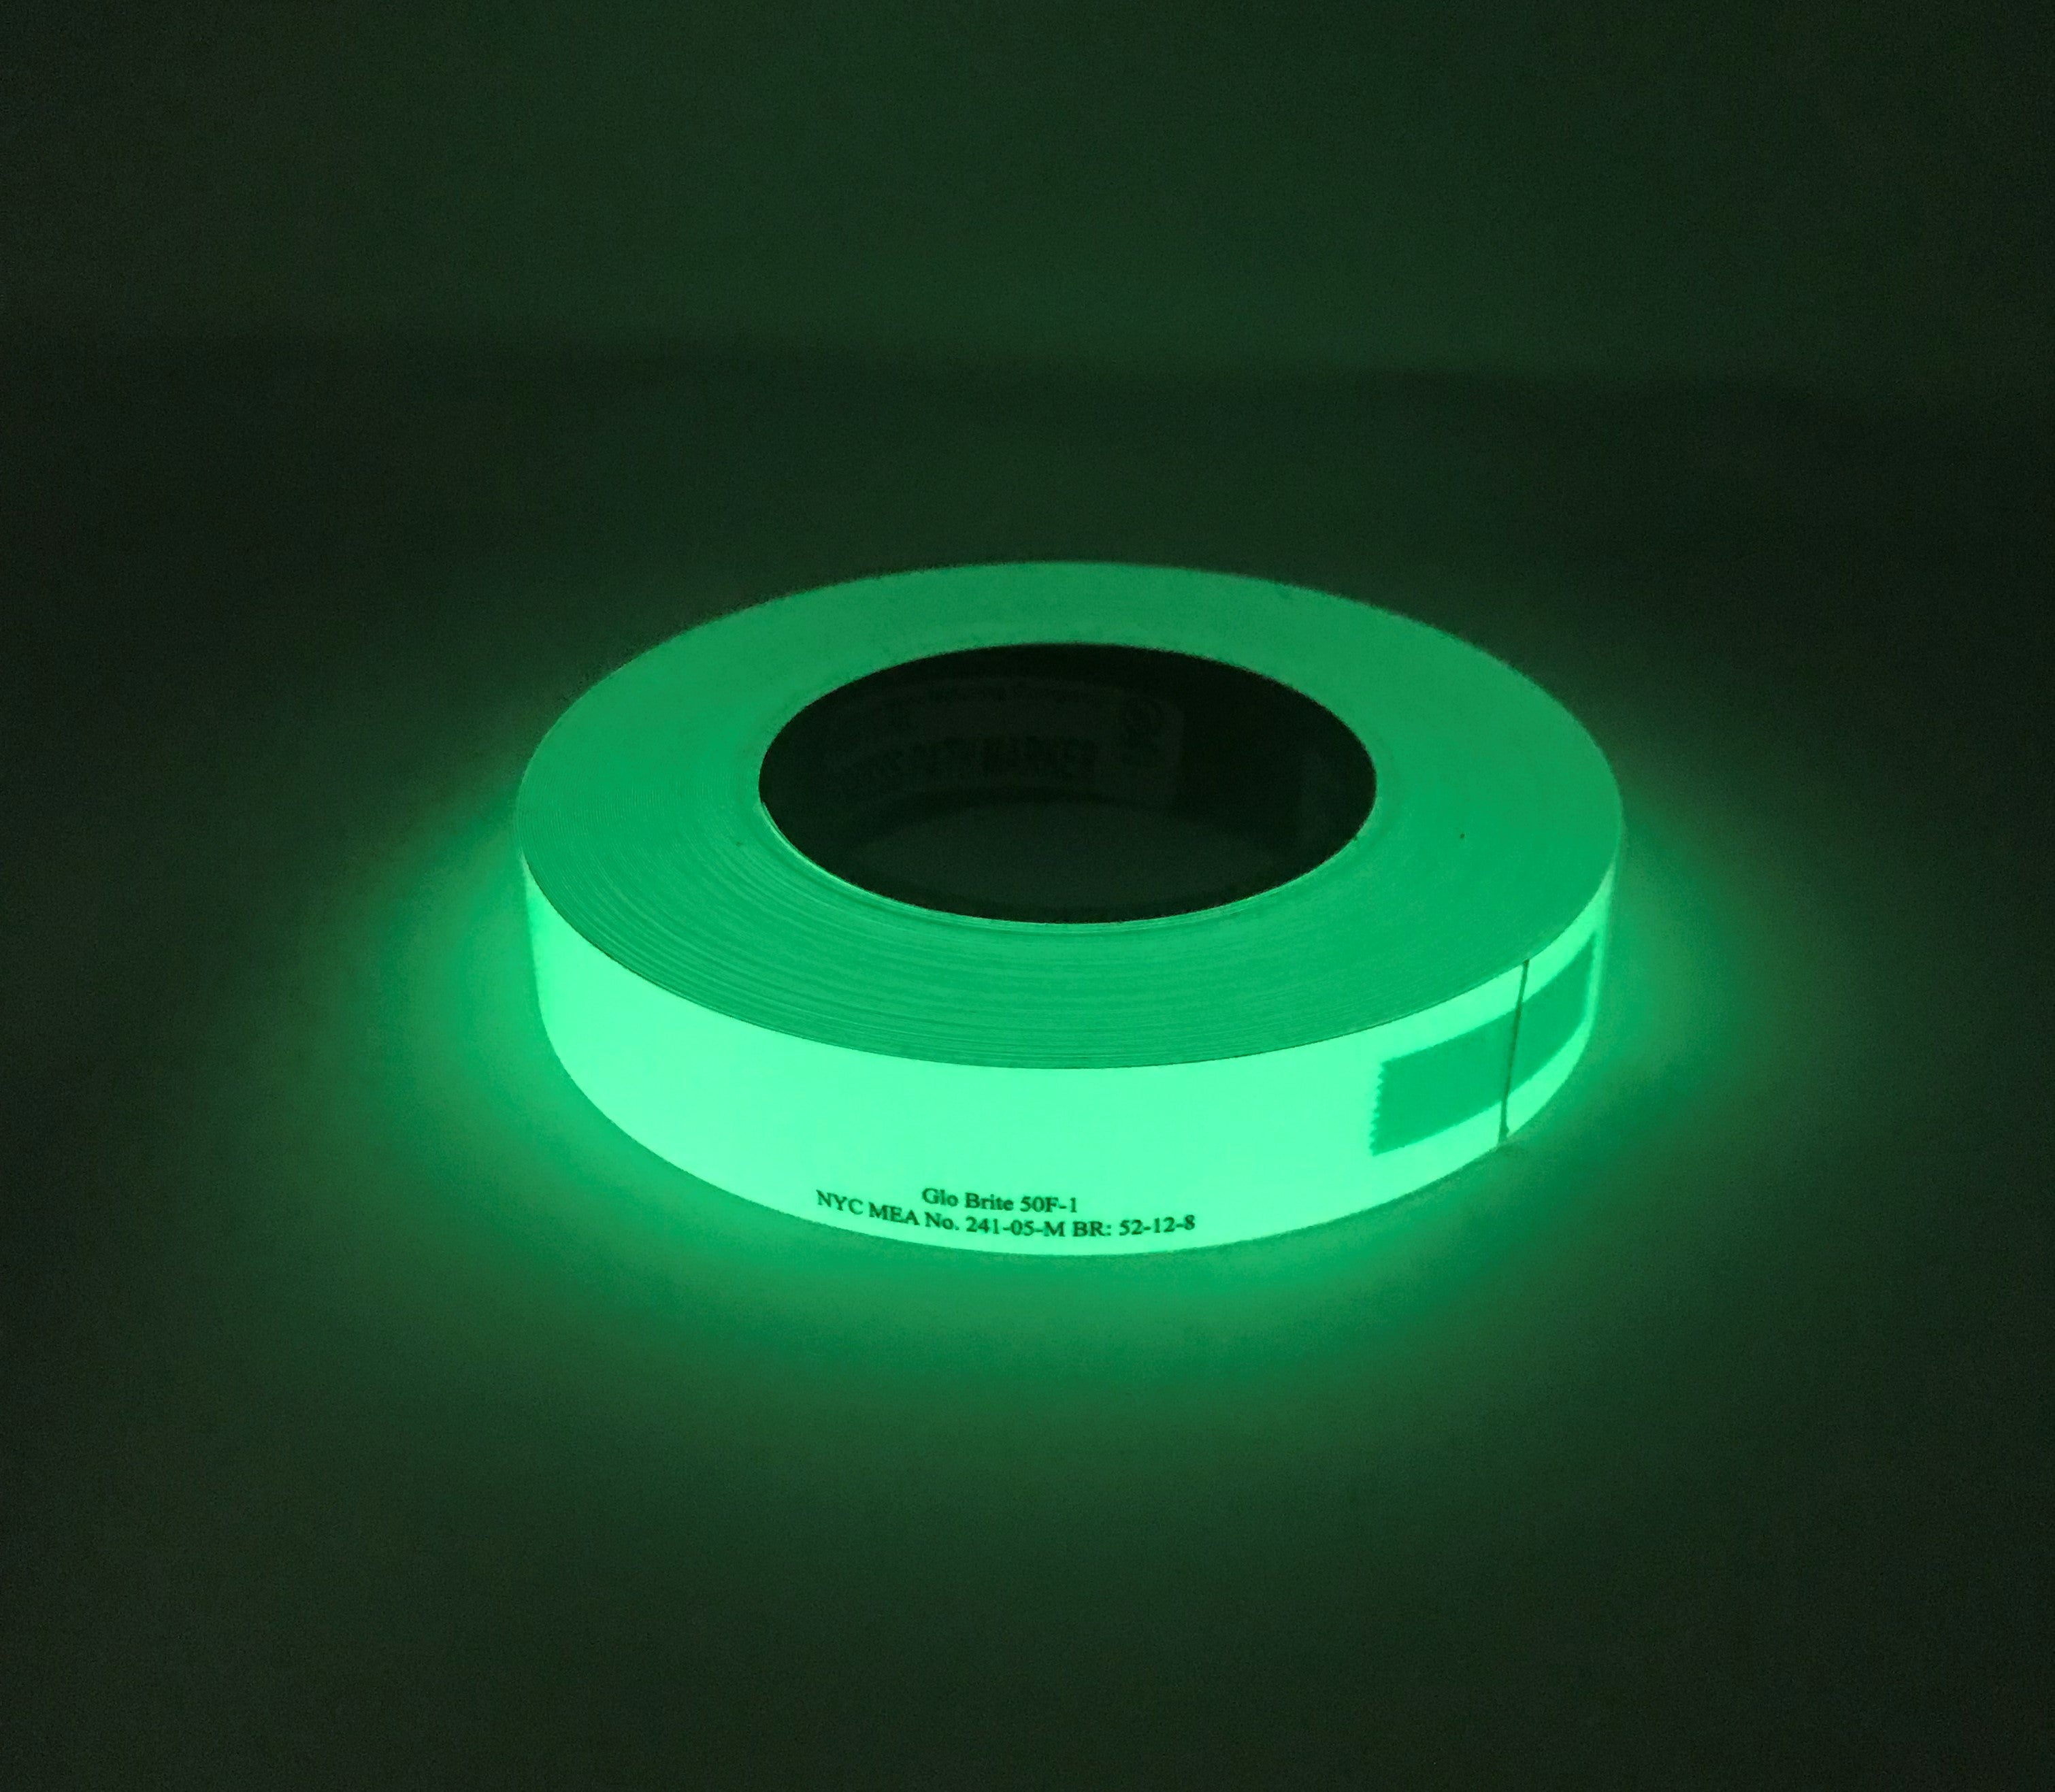 "Special Offer Only 2 Rolls Available - 1"" x 100' Roll GLOW IN THE DARK Emergency Egress Tape 50F-1 - Enter Code 50OFFTODAY at checkout for 50% Savings"